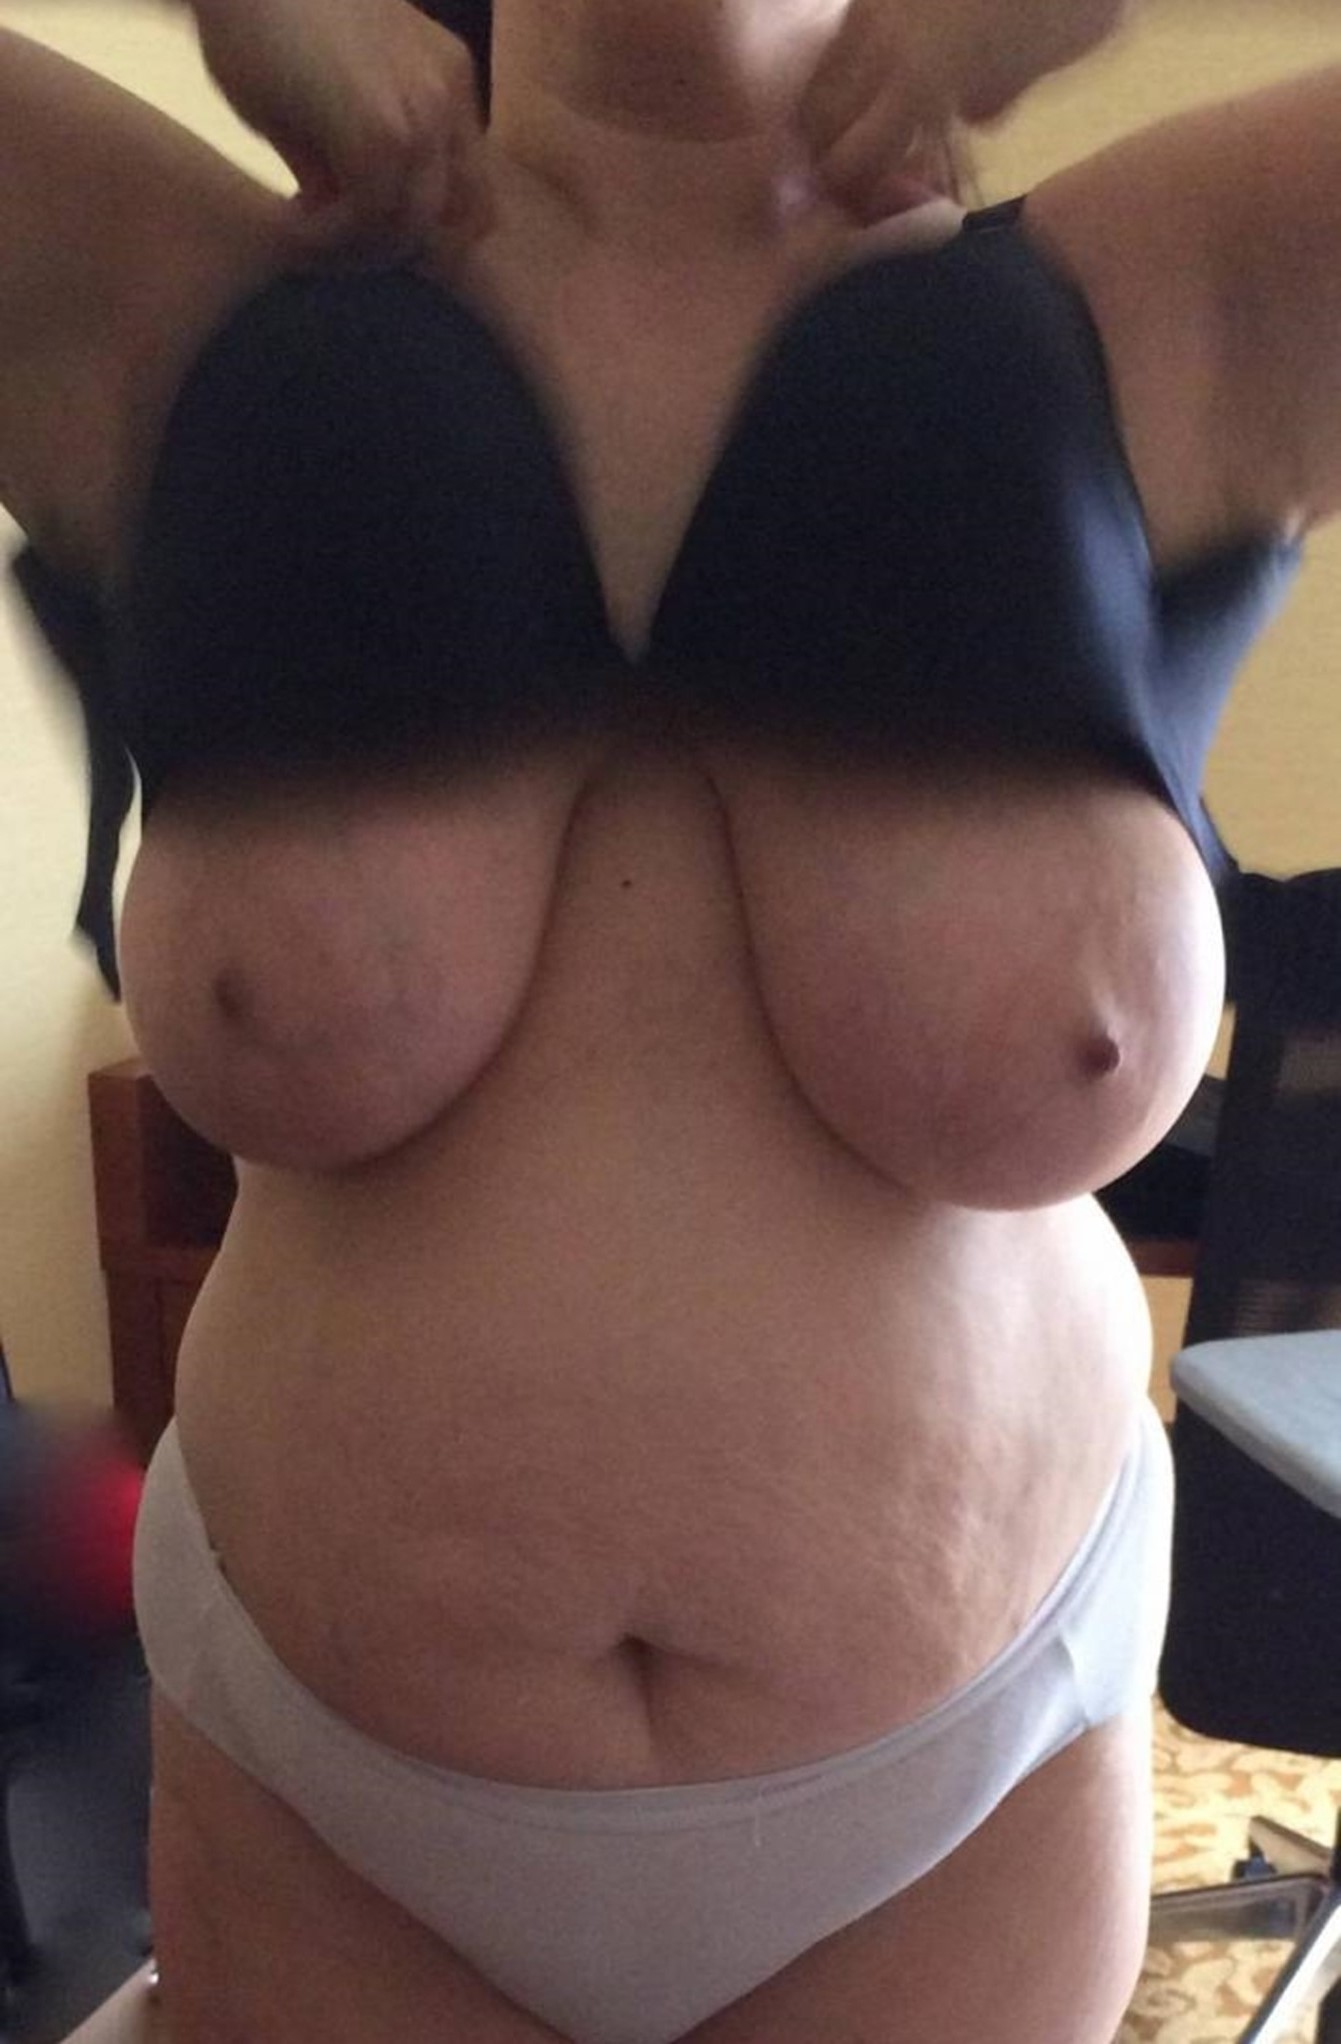 Porn boob jobs before after